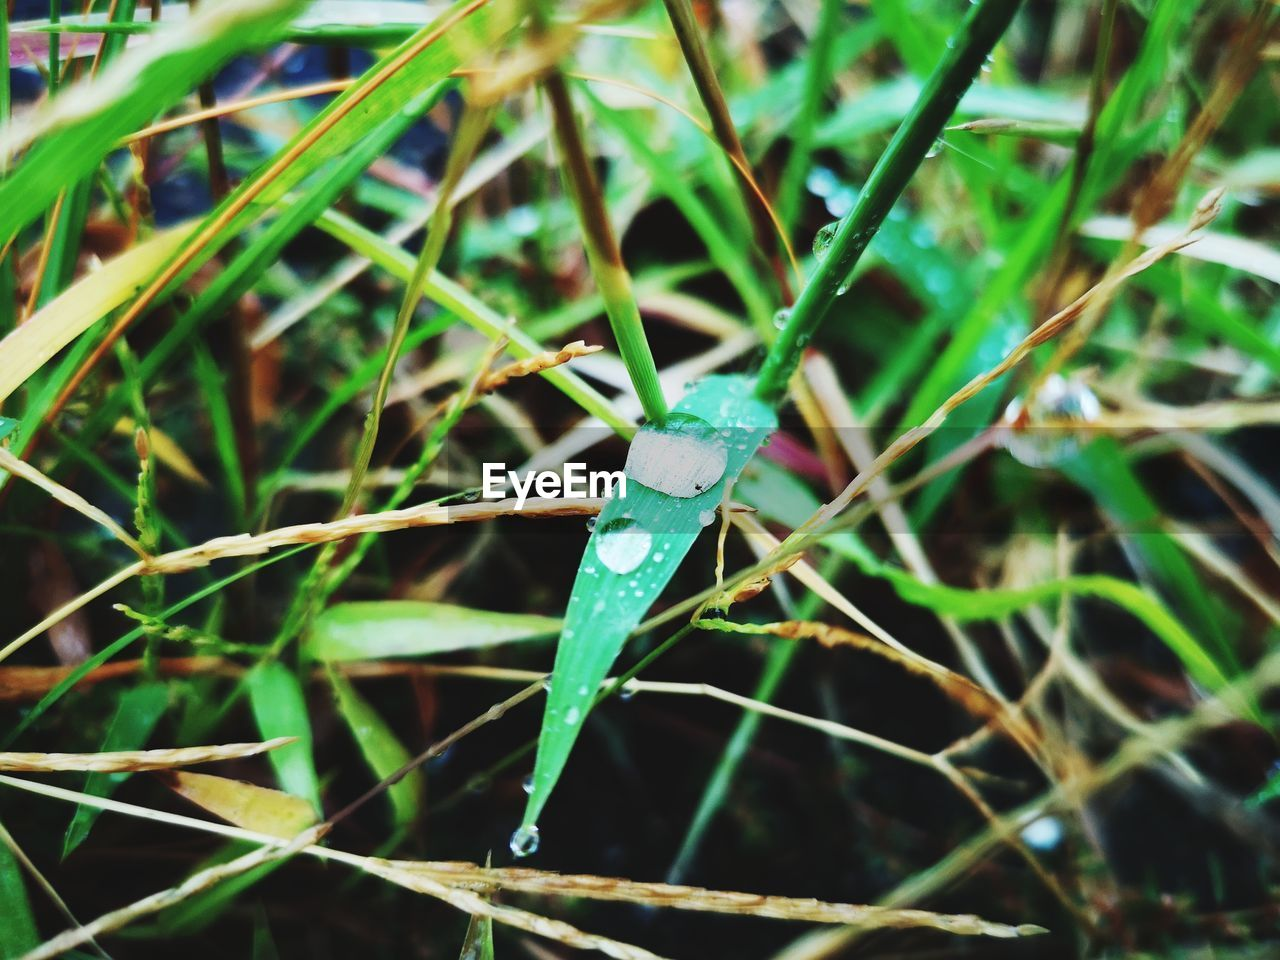 green color, day, plant, growth, close-up, grass, nature, no people, plant part, one animal, animal, invertebrate, animals in the wild, insect, focus on foreground, leaf, animal wildlife, animal themes, outdoors, selective focus, blade of grass